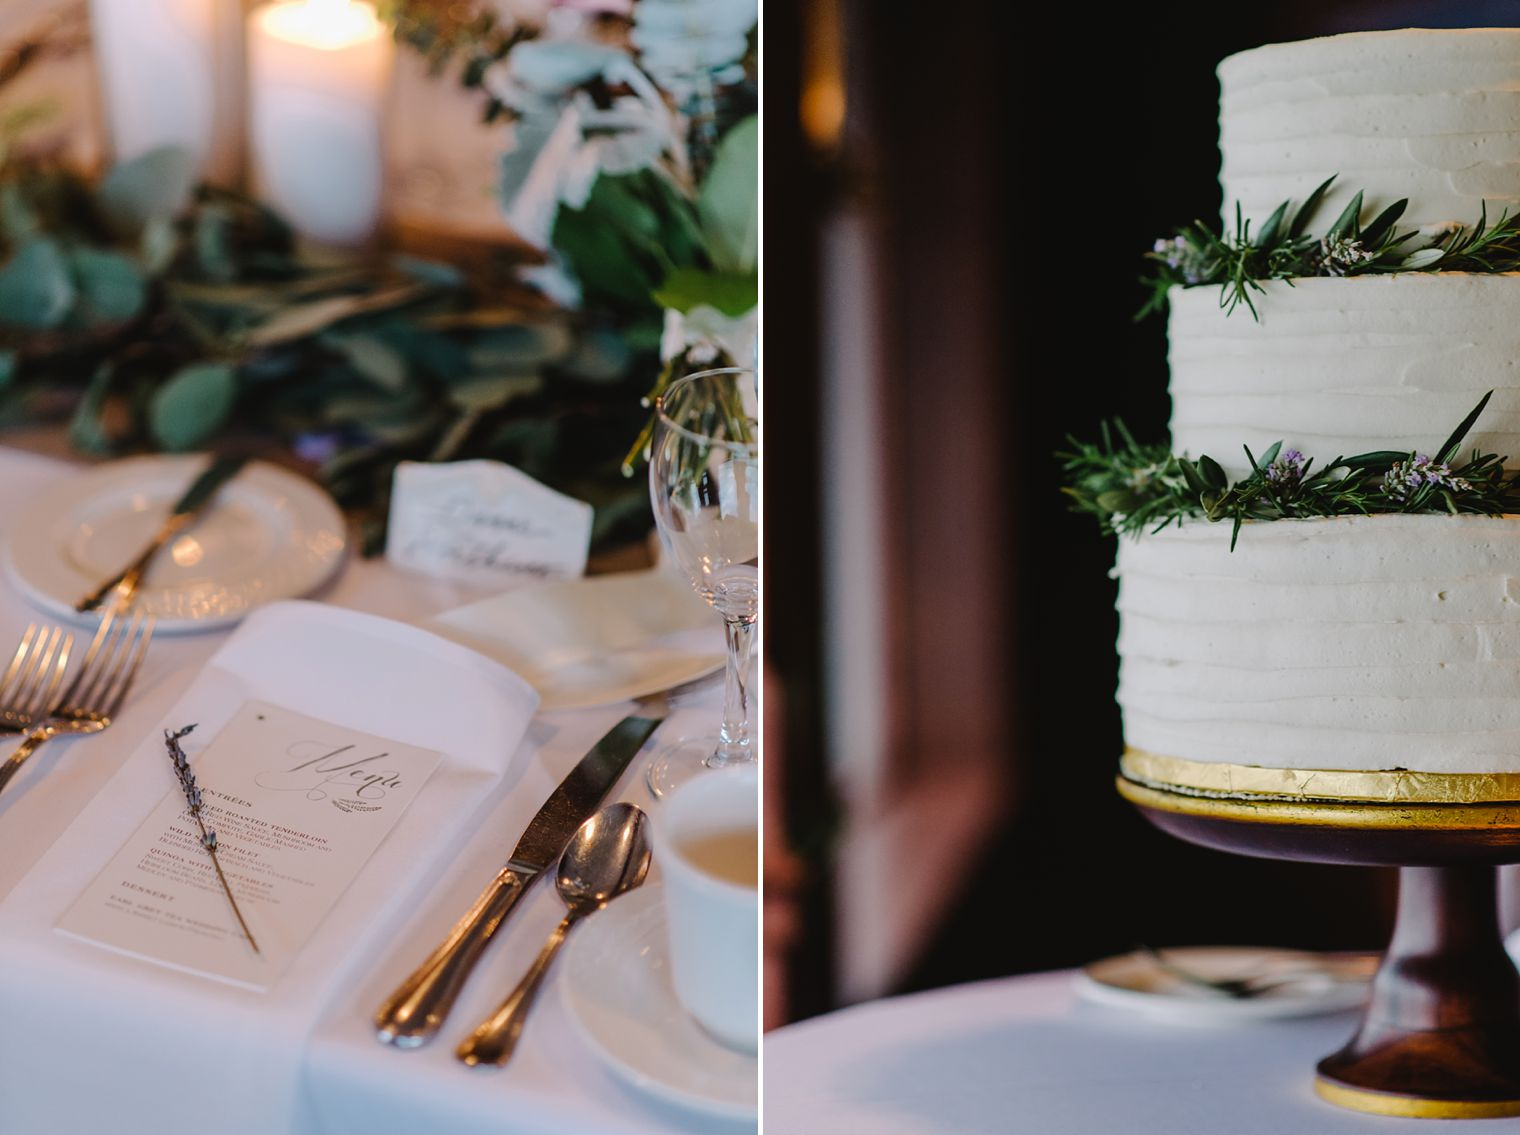 wedding details at Occonomowoc lake club